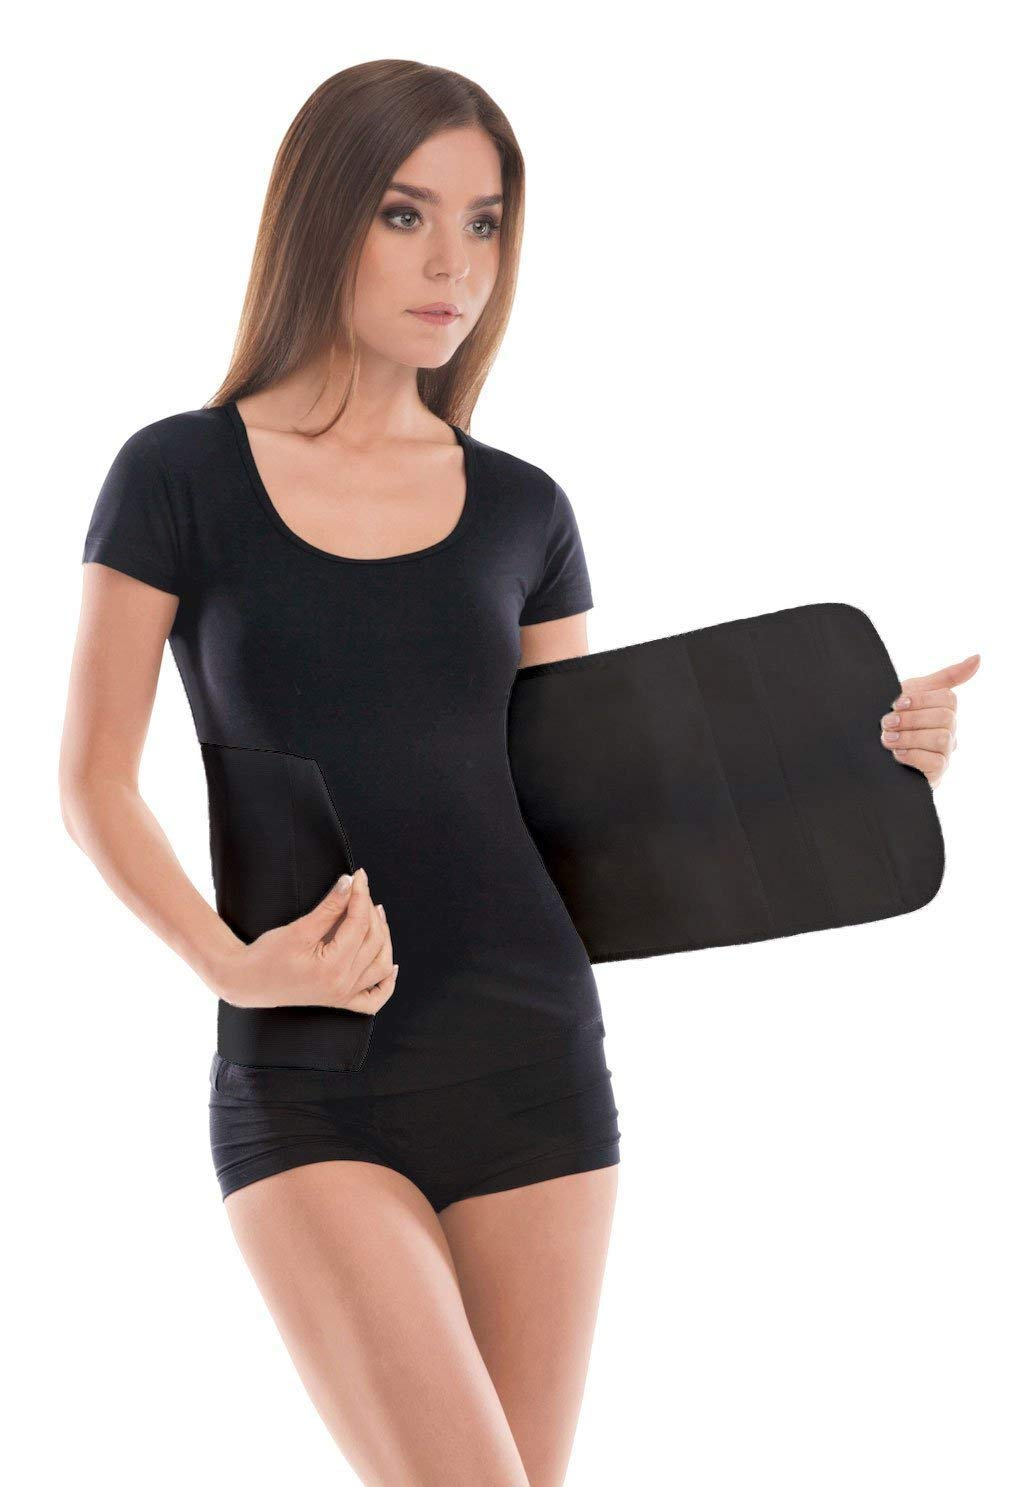 TOROS-Group Elastic 24 cm Abdominal Binder/Postpartum & Post Operative Belly Wrap -Medium Black